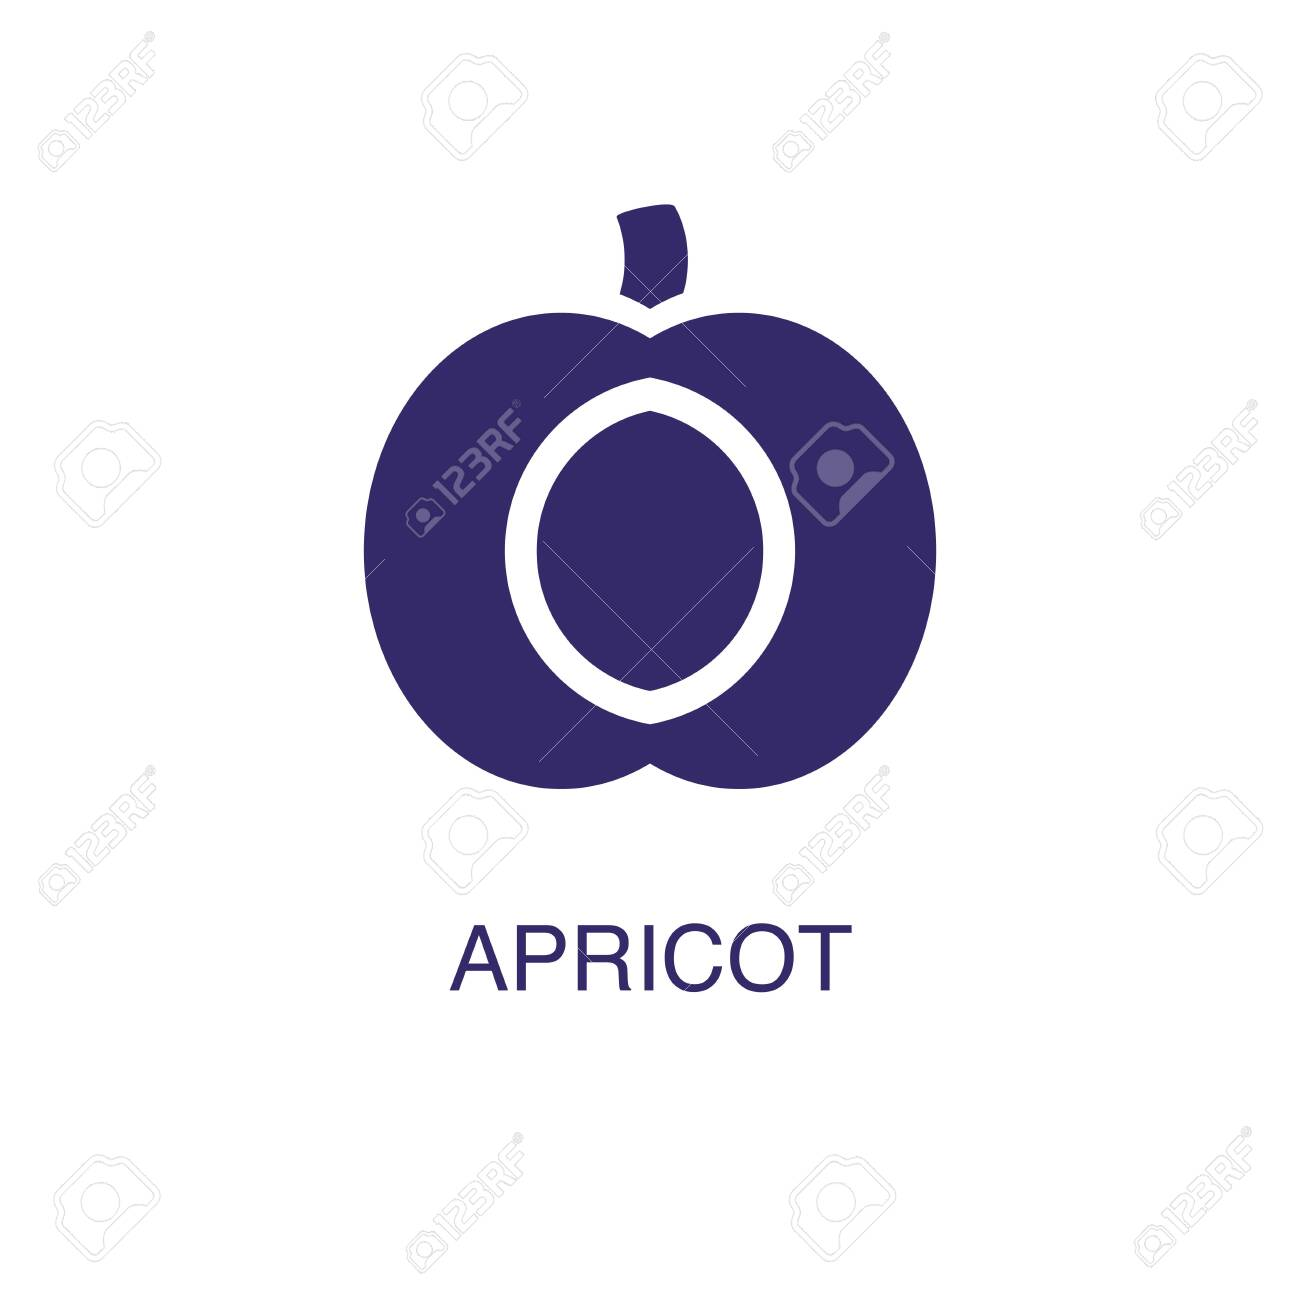 Apricot element in flat simple style on white background. Apricot icon, with text name concept template - 134450786